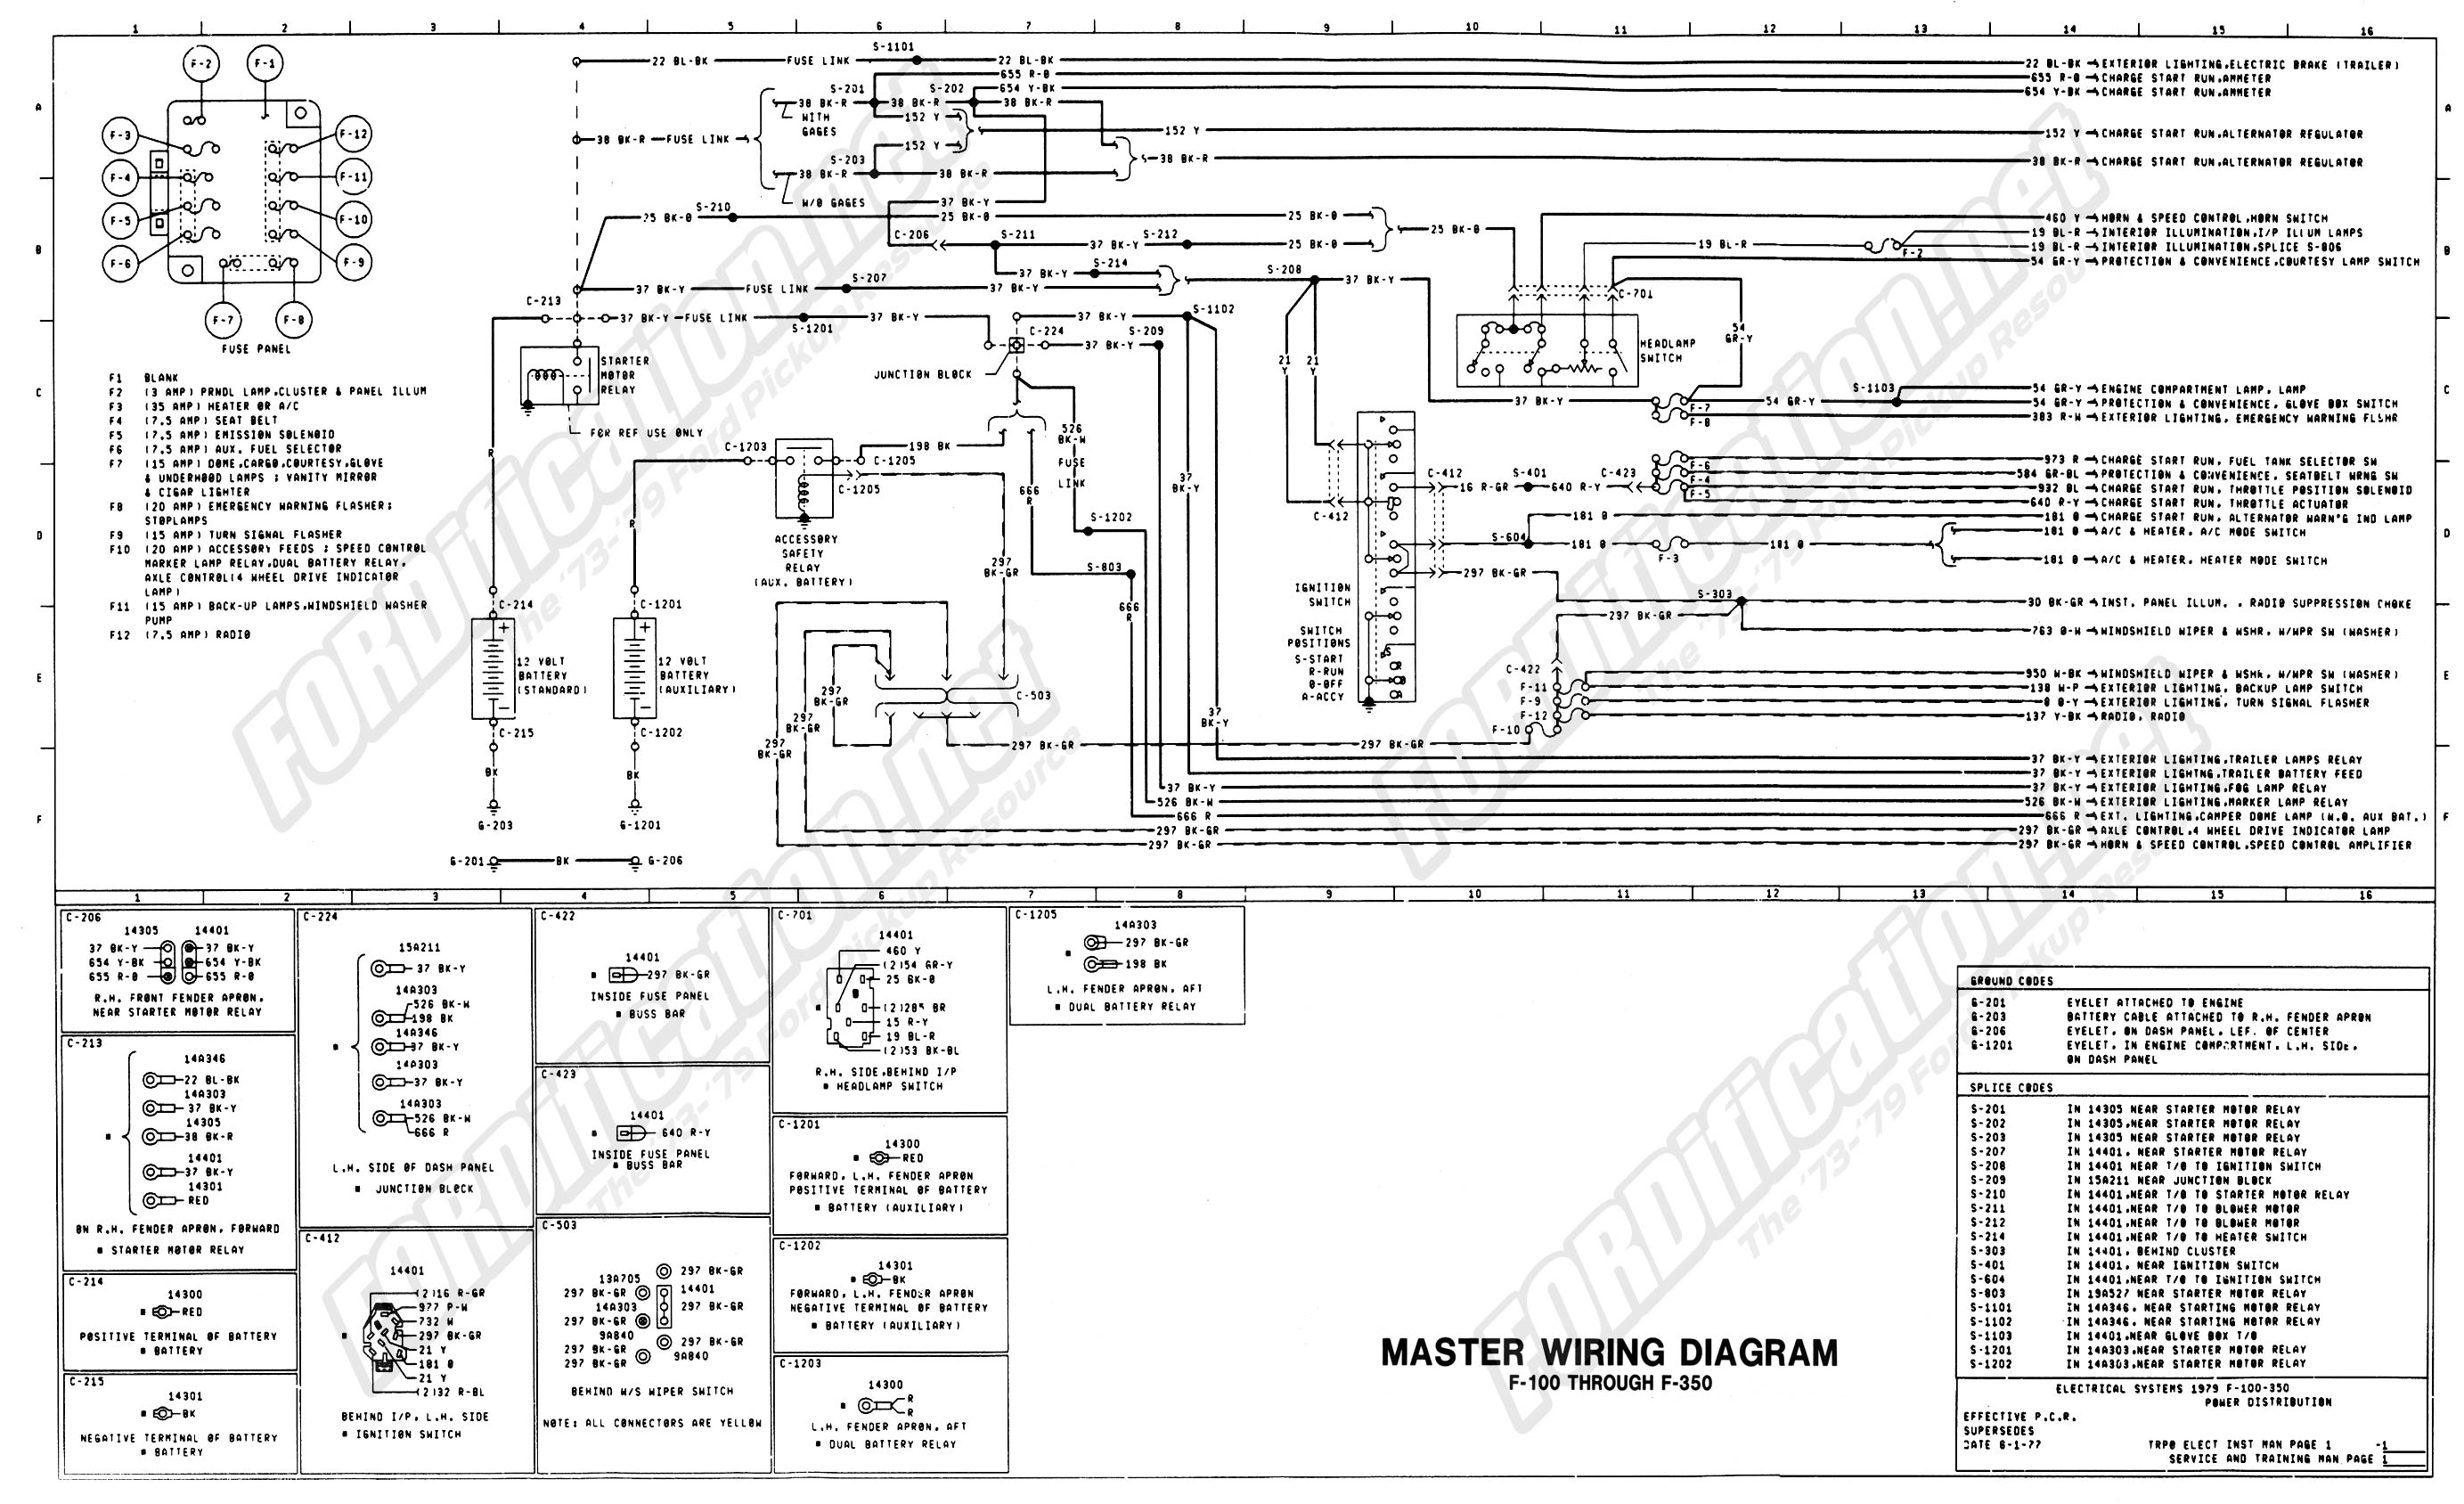 Marvelous International Truck Wiring Diagram Collection Wiring Cloud Hisonuggs Outletorg